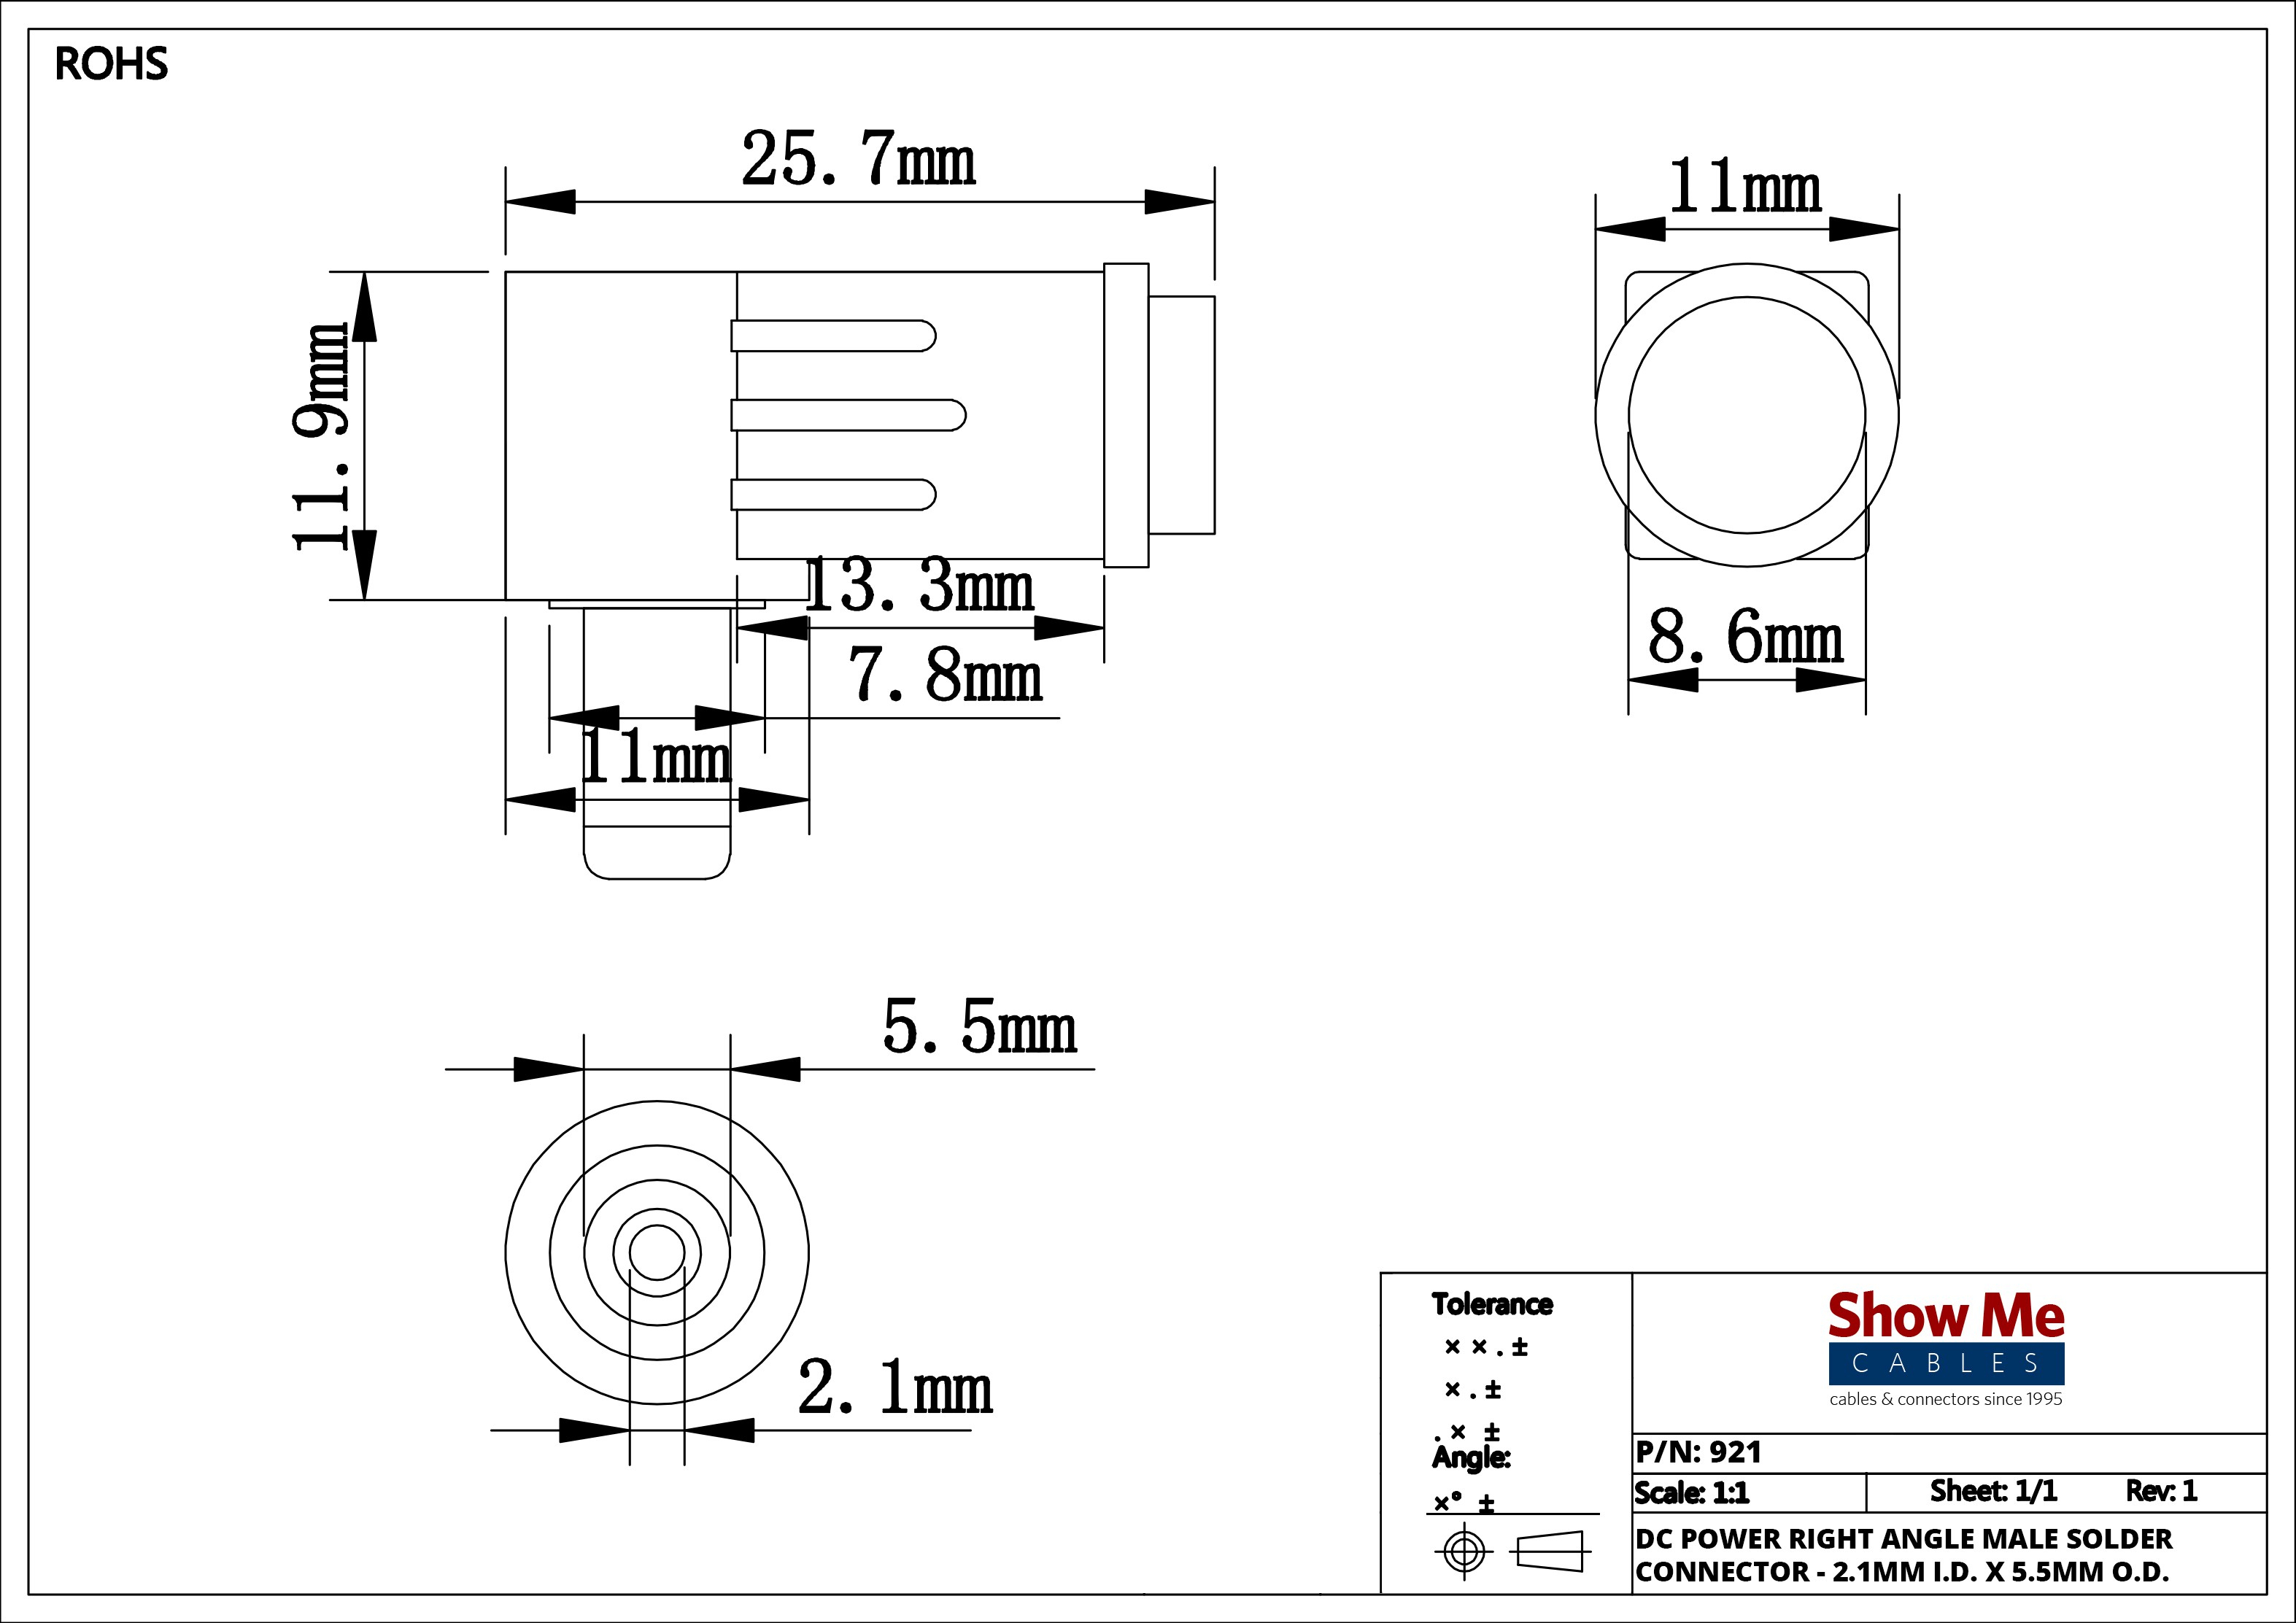 Cat 5 Wall Jack Wiring Diagram Download Sample T1 Collection 3 Mm Stereo Elegant